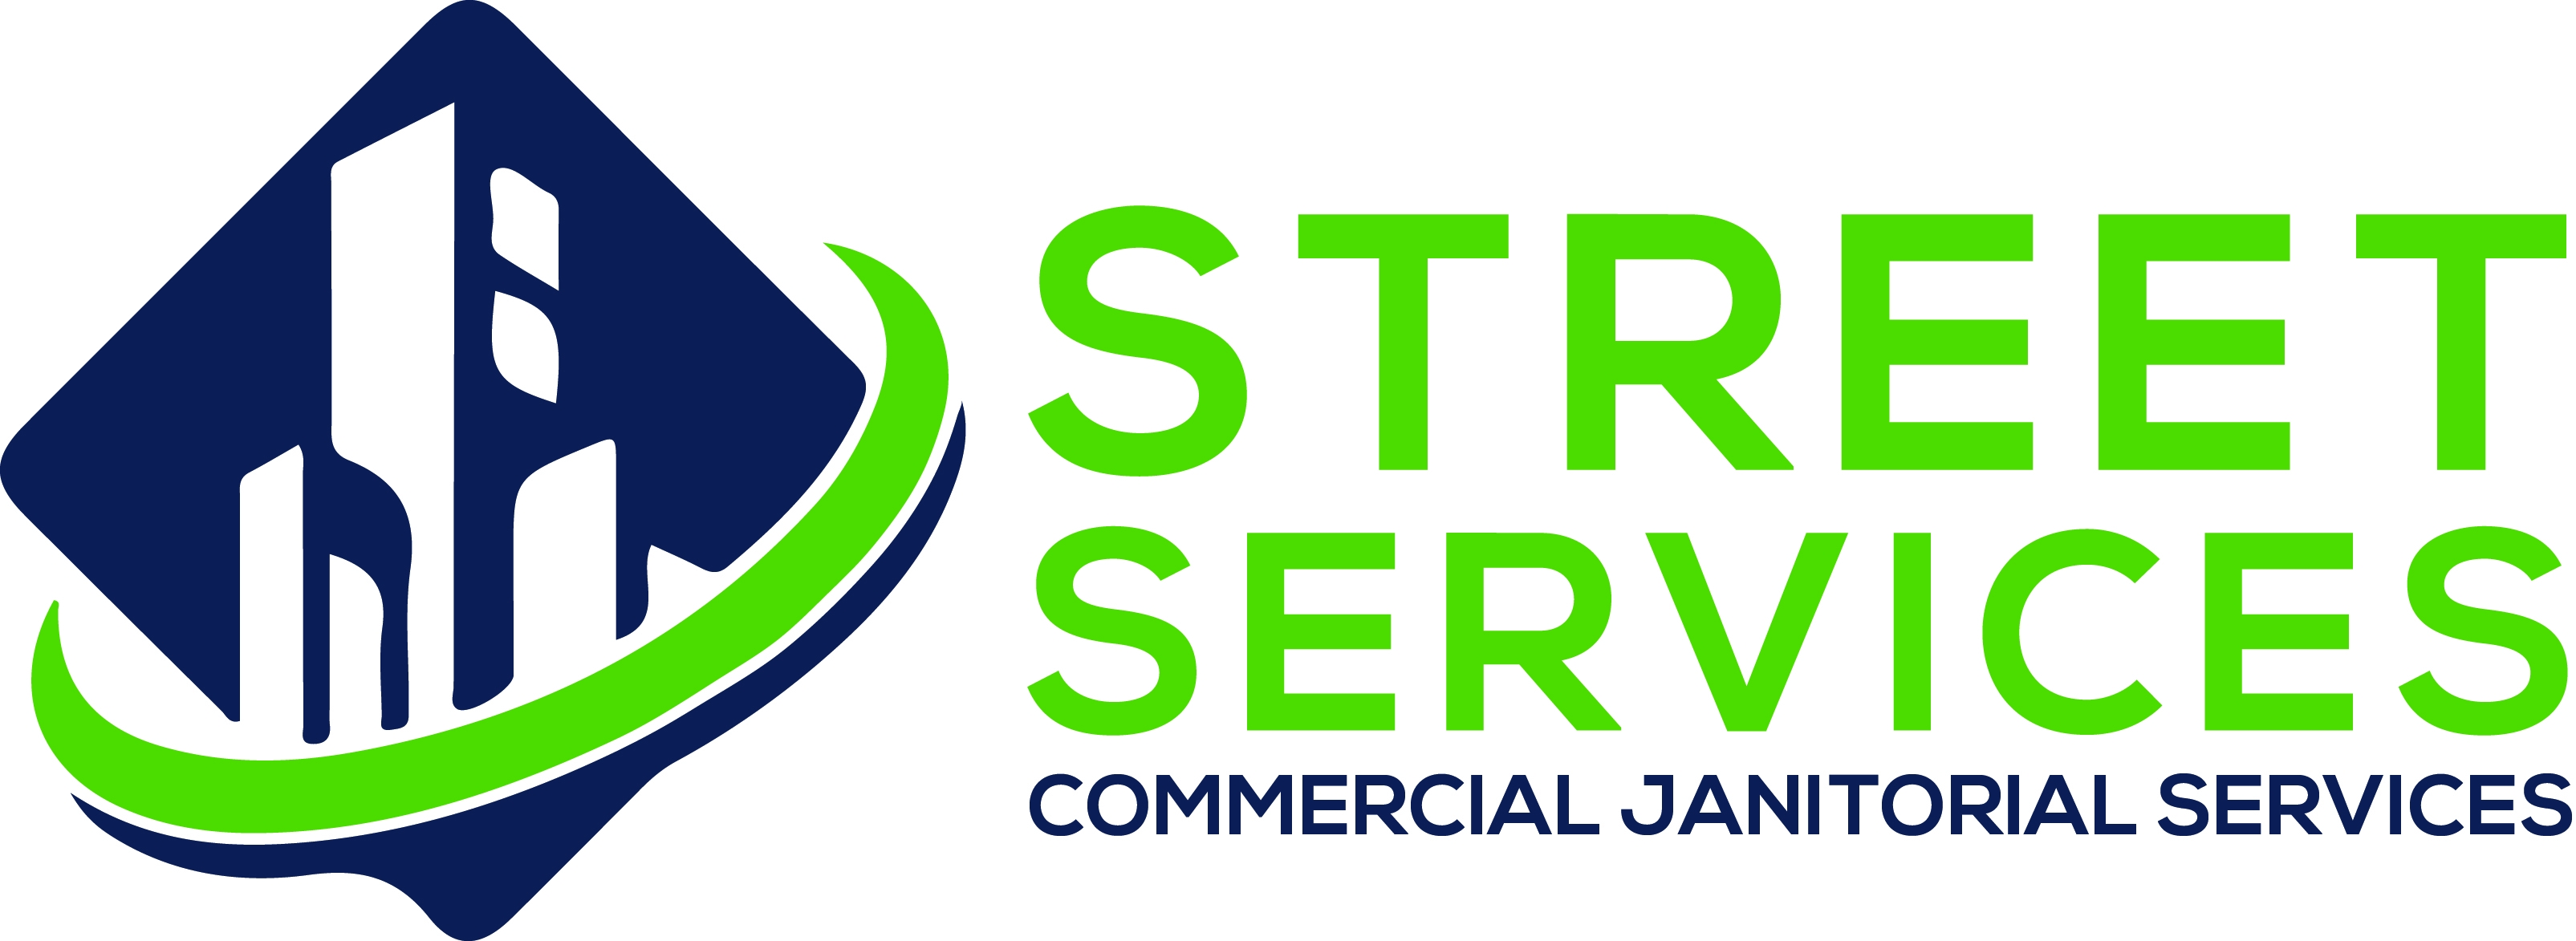 Street Services Janitoral logo